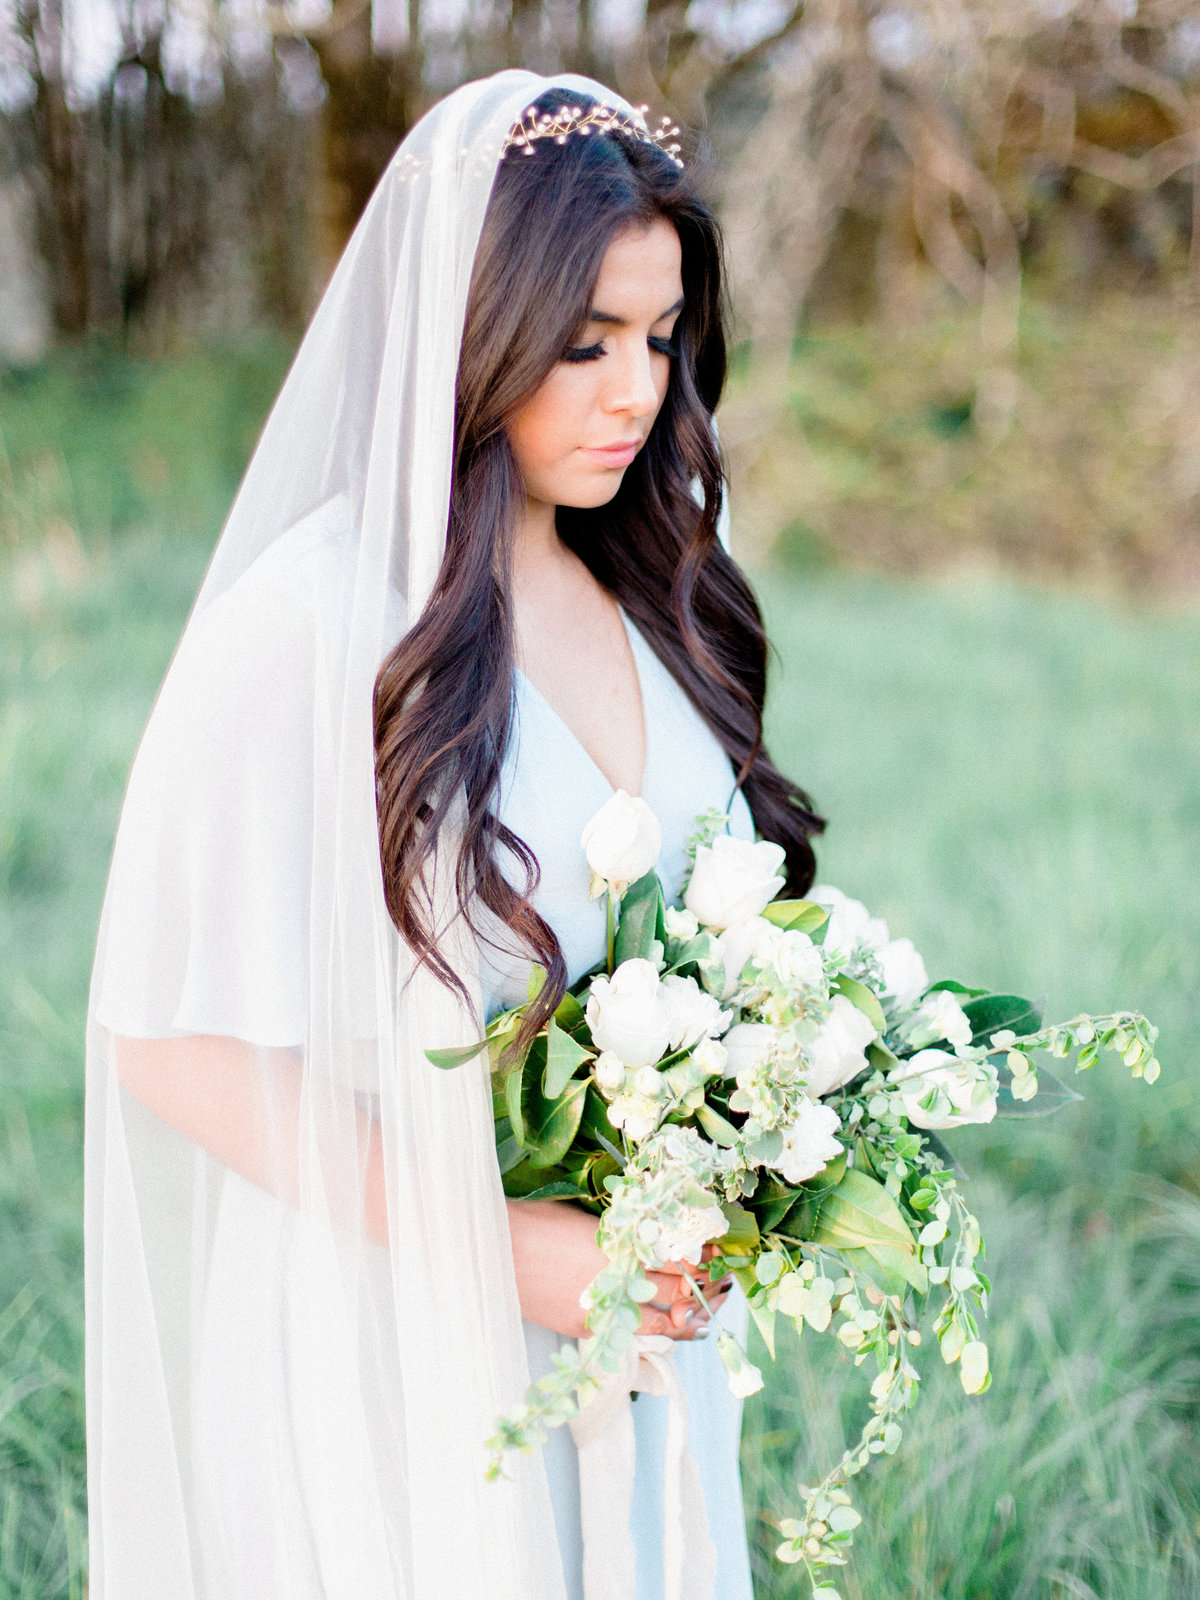 WHEN-SHE-KNEW-PHOTOGRAPHY-ADORN-MAGAZINE-ETHEREAL-BRIDAL-WEDDING-EDITORIAL-OREGON-18